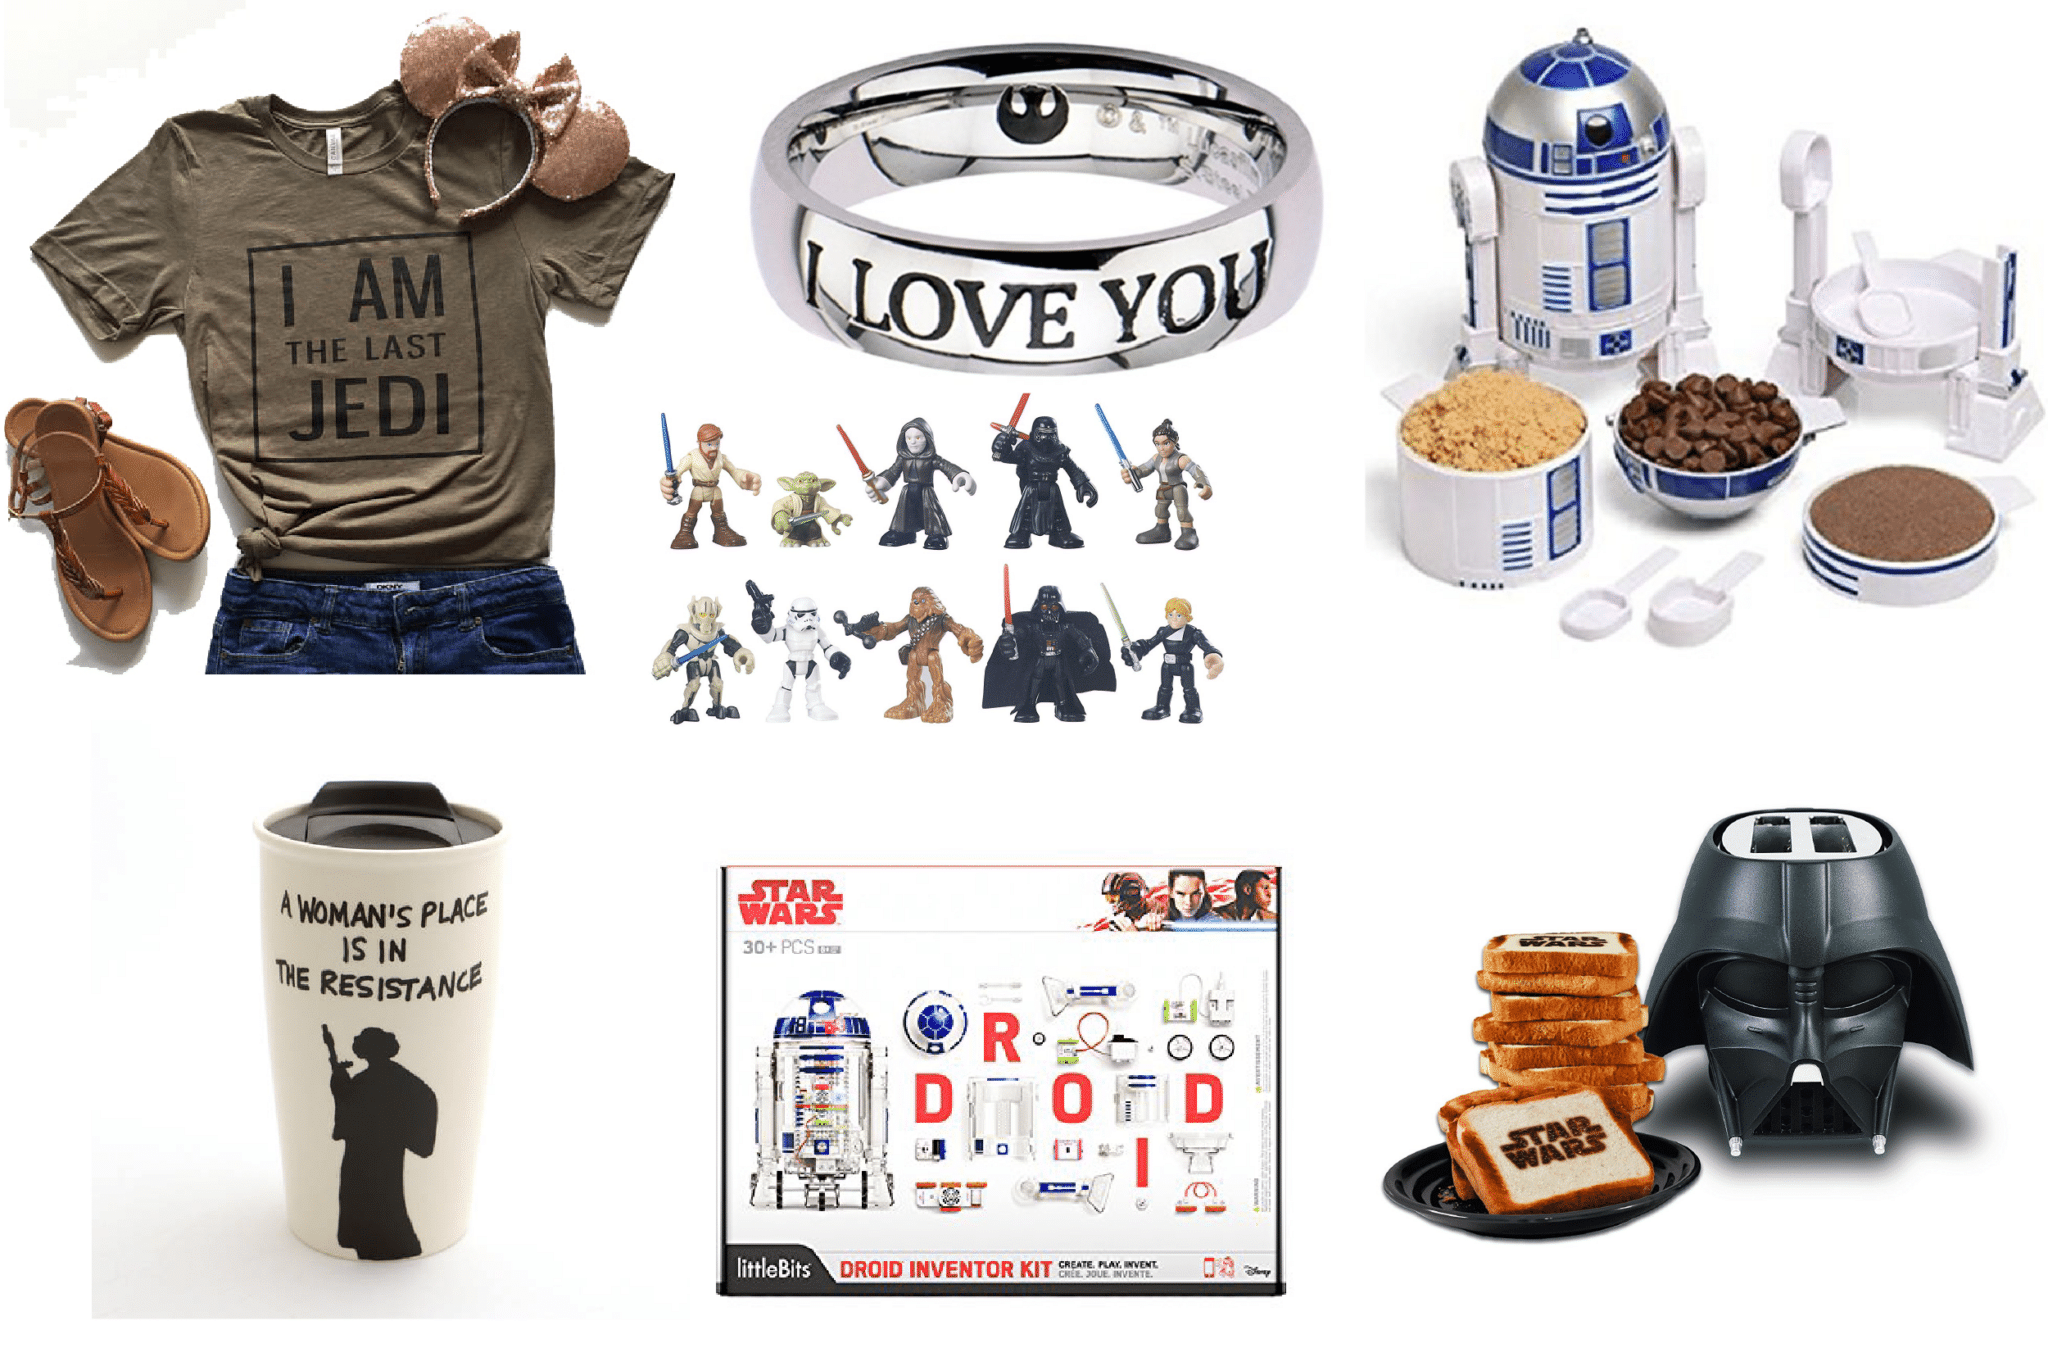 24 Star Wars Gifts That Every Star Wars Fan Wants This Year